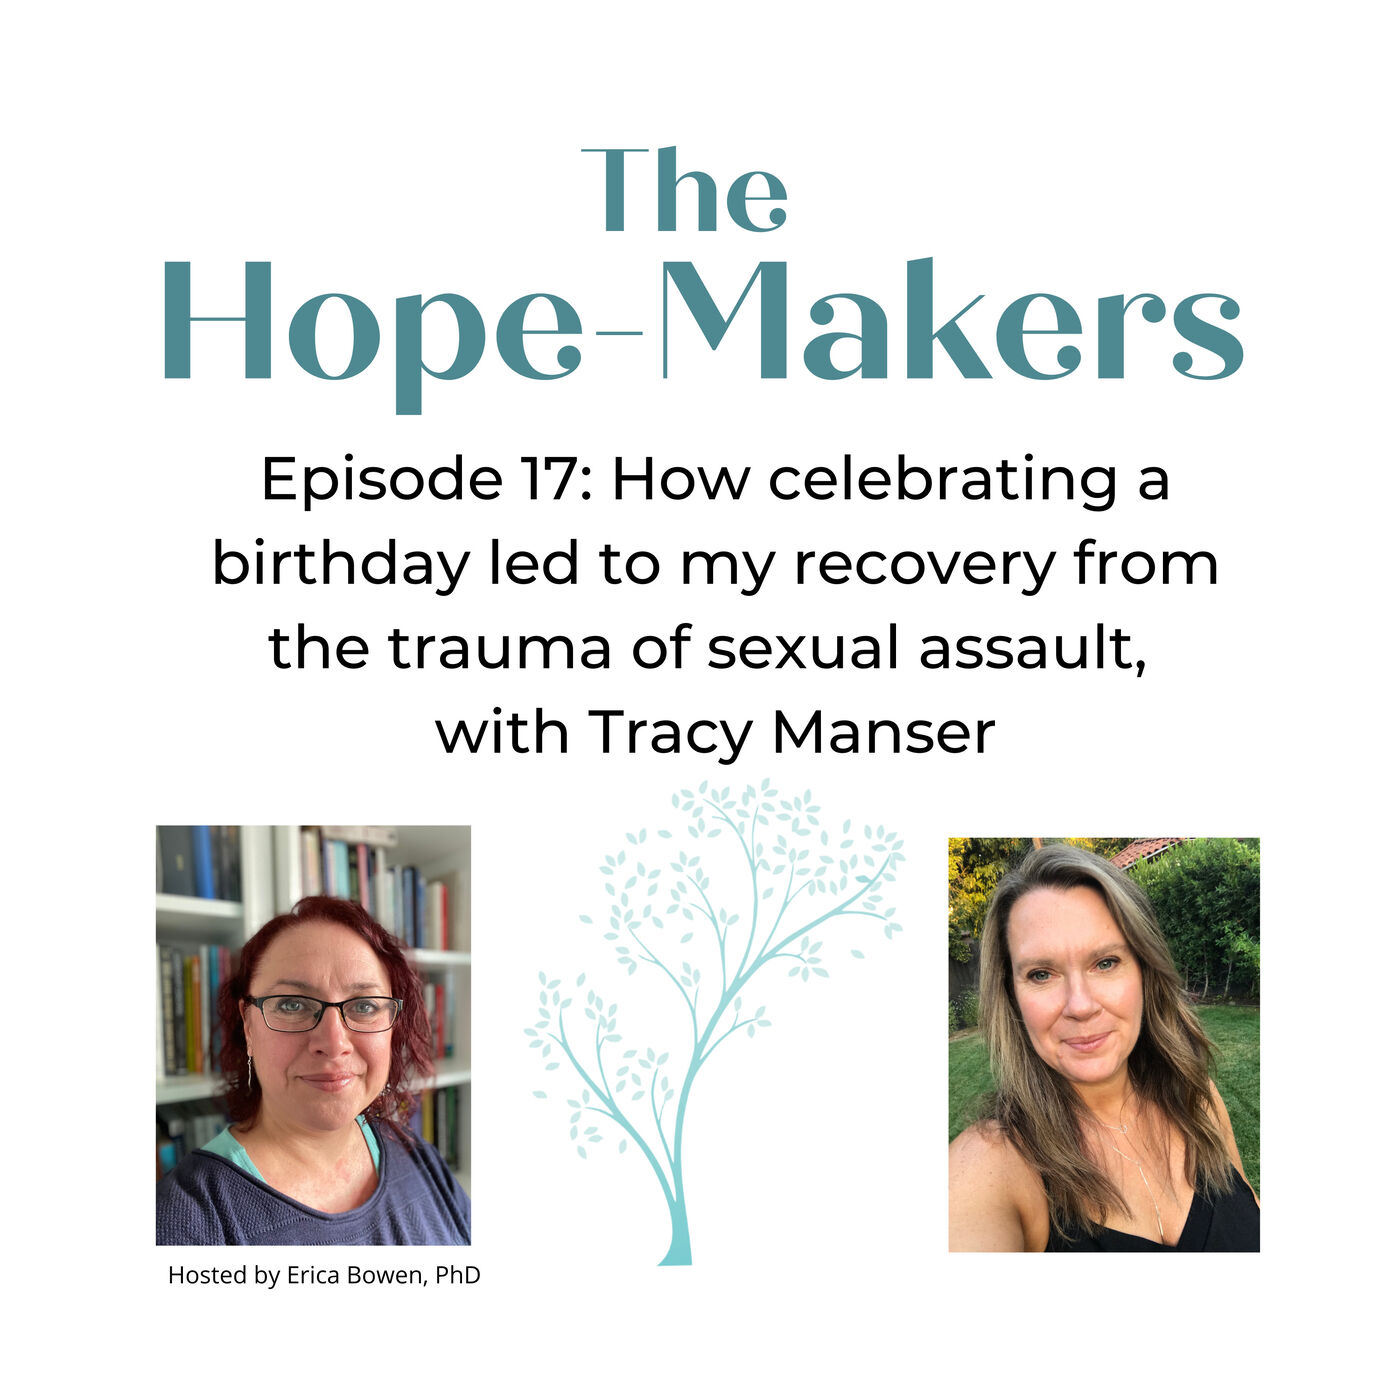 Episode 17: How celebrating a birthday led to my recovery from the trauma of sexual assault, with Tracy Manser